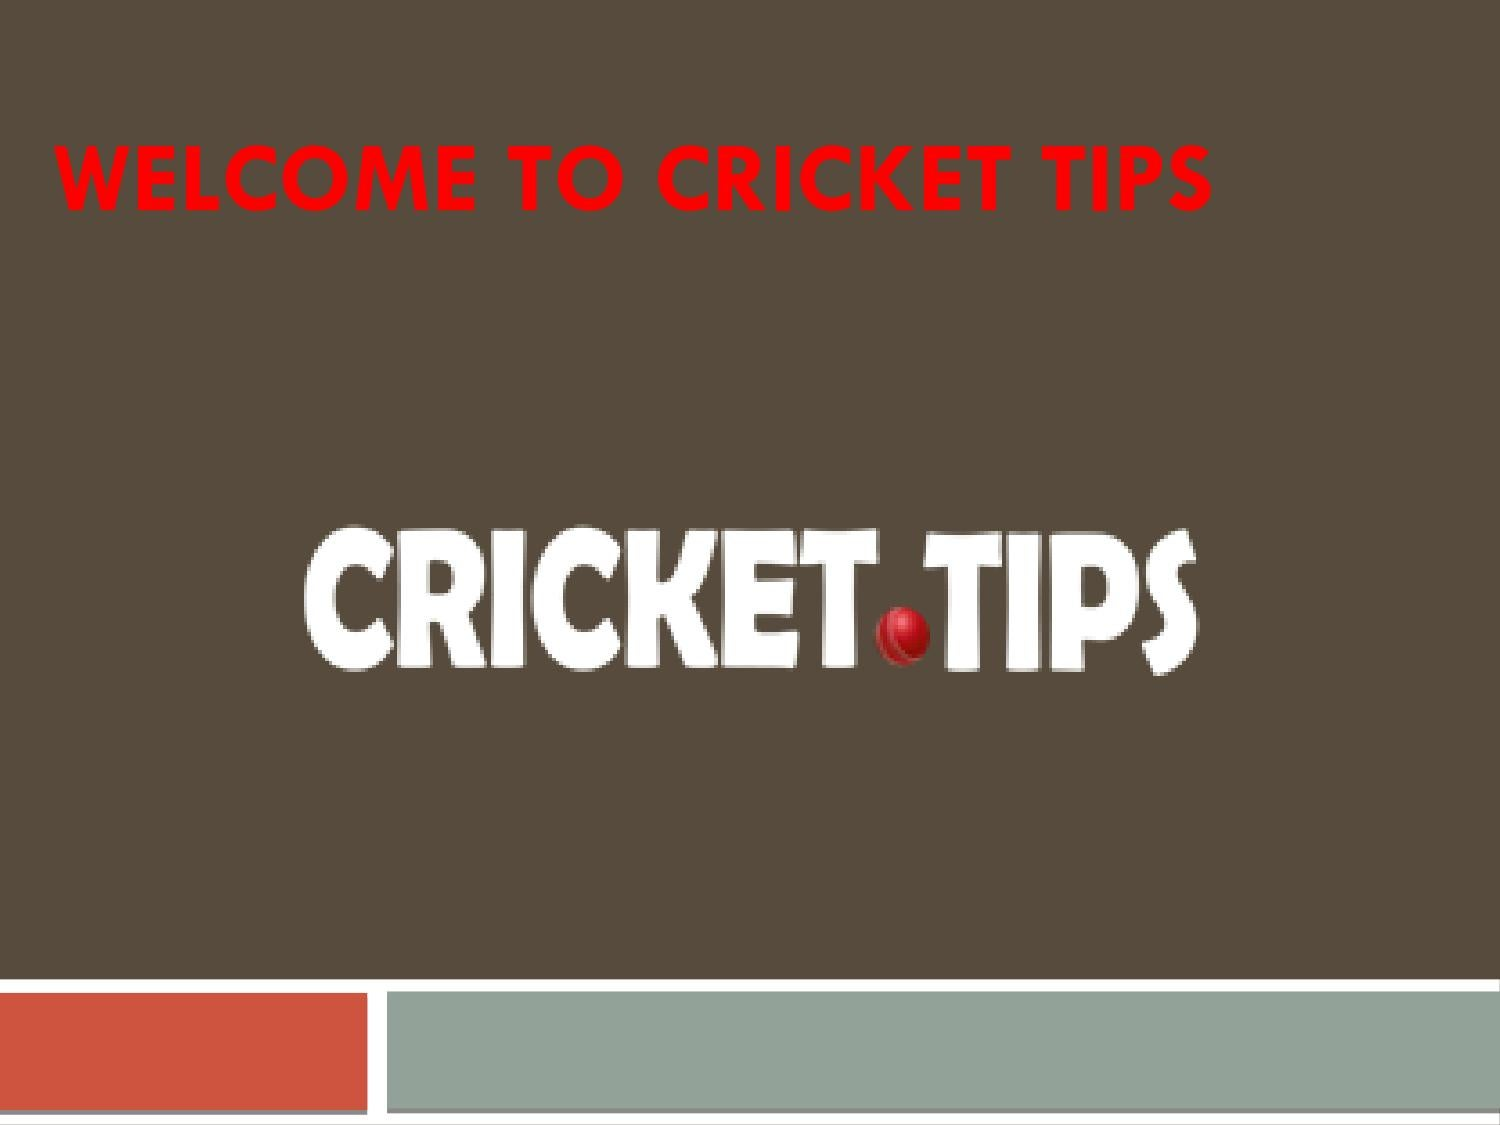 Online betting cricket tips free fantasy sports betting websites review